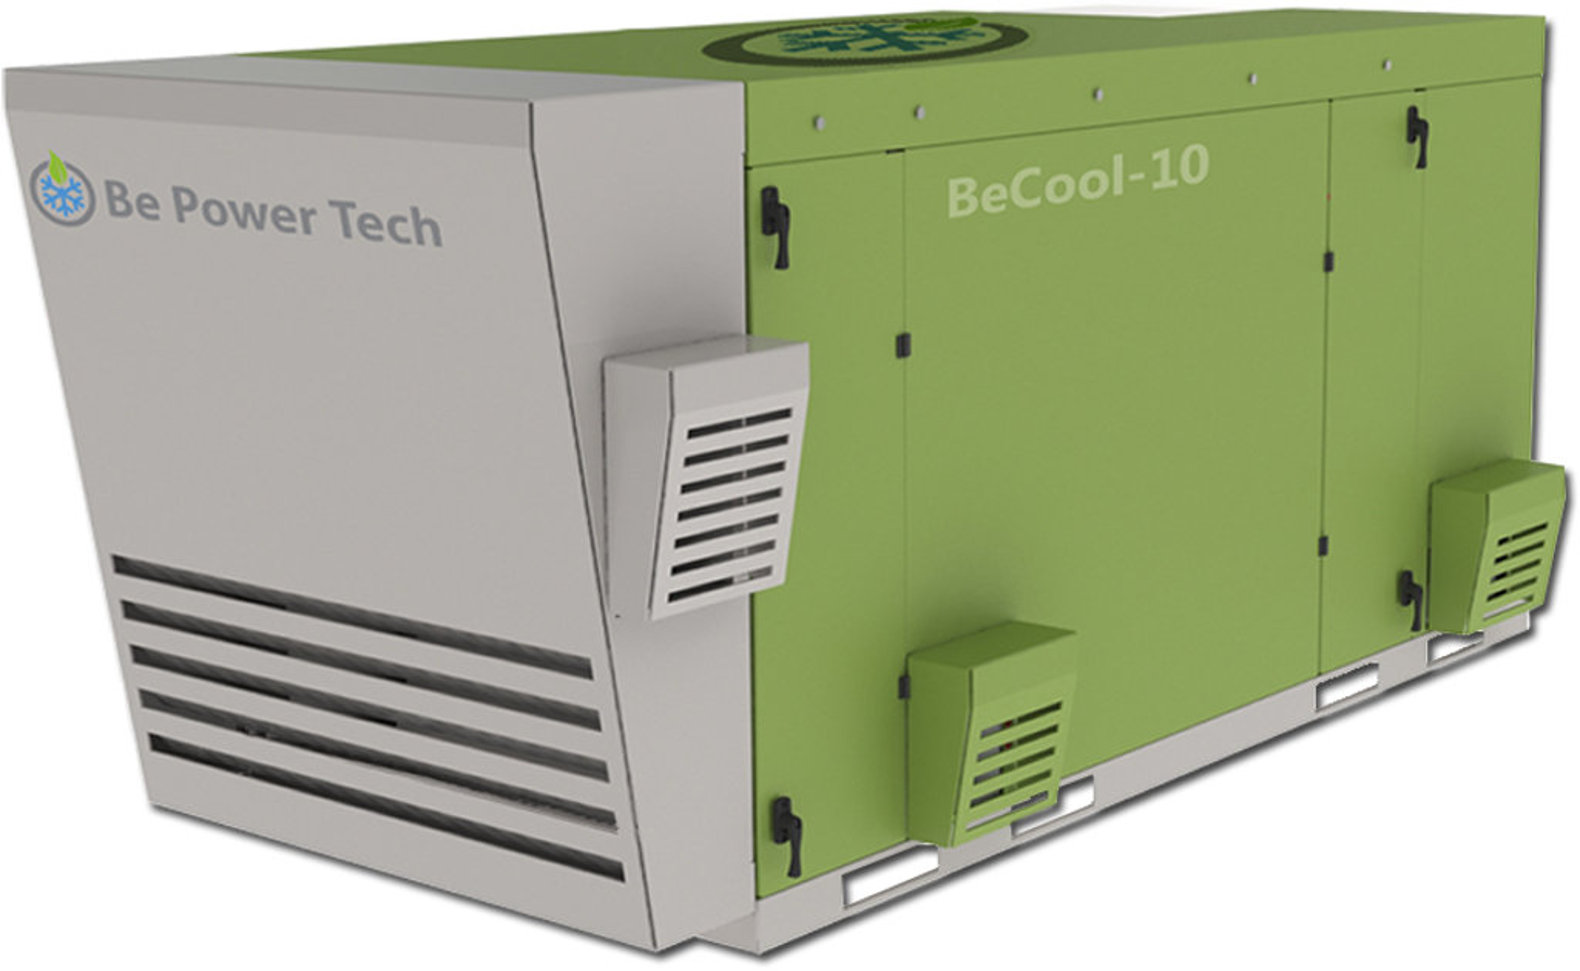 natural gas air conditioner. BeCool HVAC System Generates Clean Energy While Keeping Buildings Cool Natural Gas Air Conditioner A